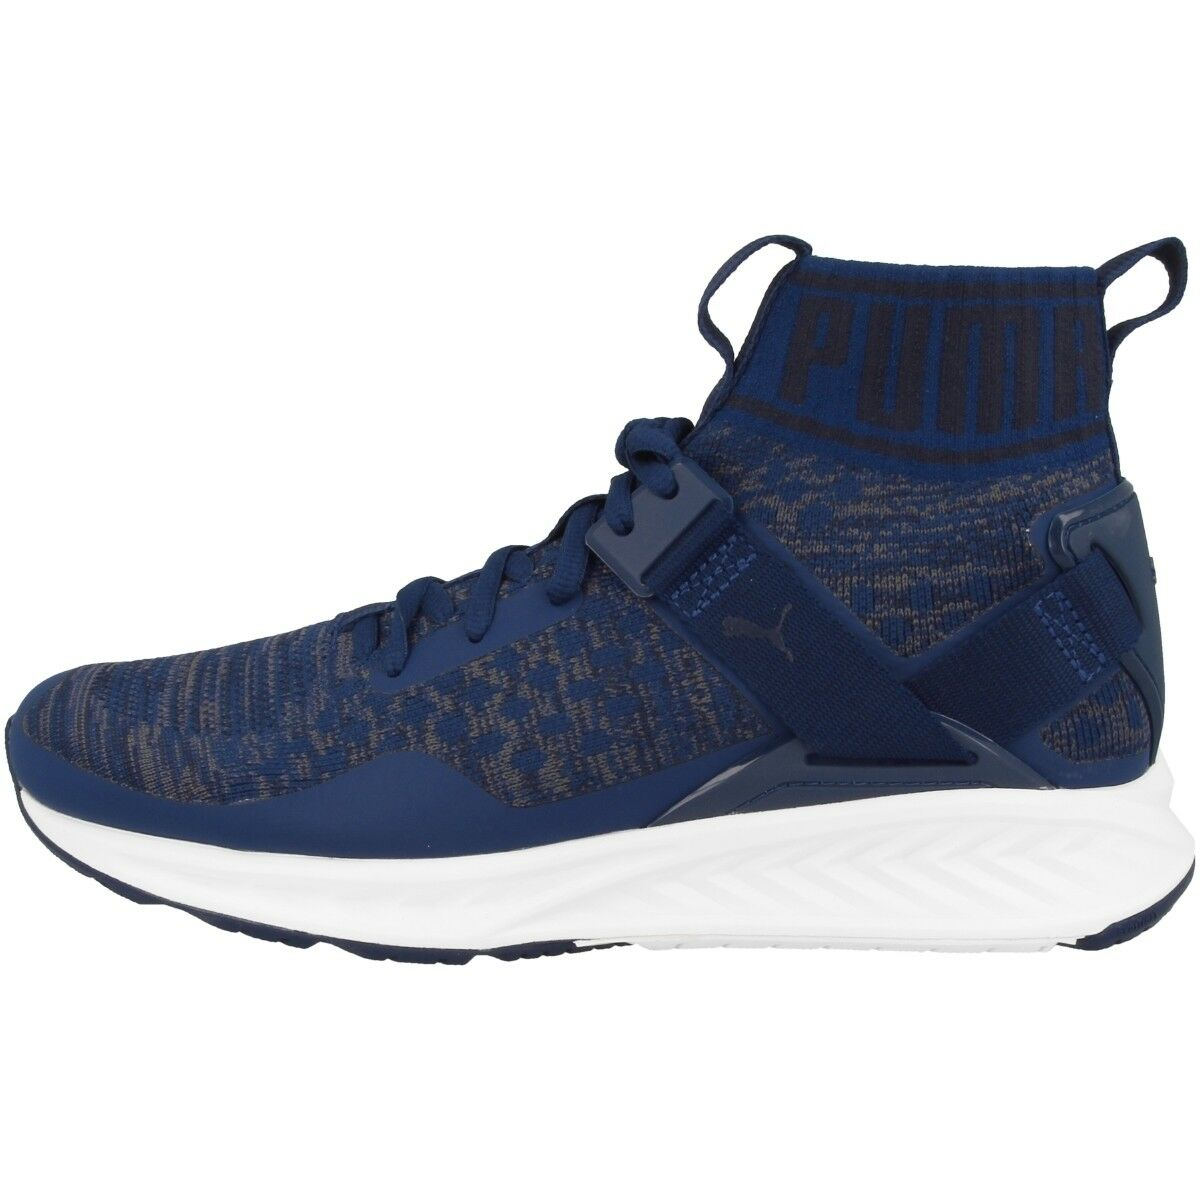 Puma Ignite evoKNIT Schuhe Herren High Top Sneaker blue depths Drift 189697-11